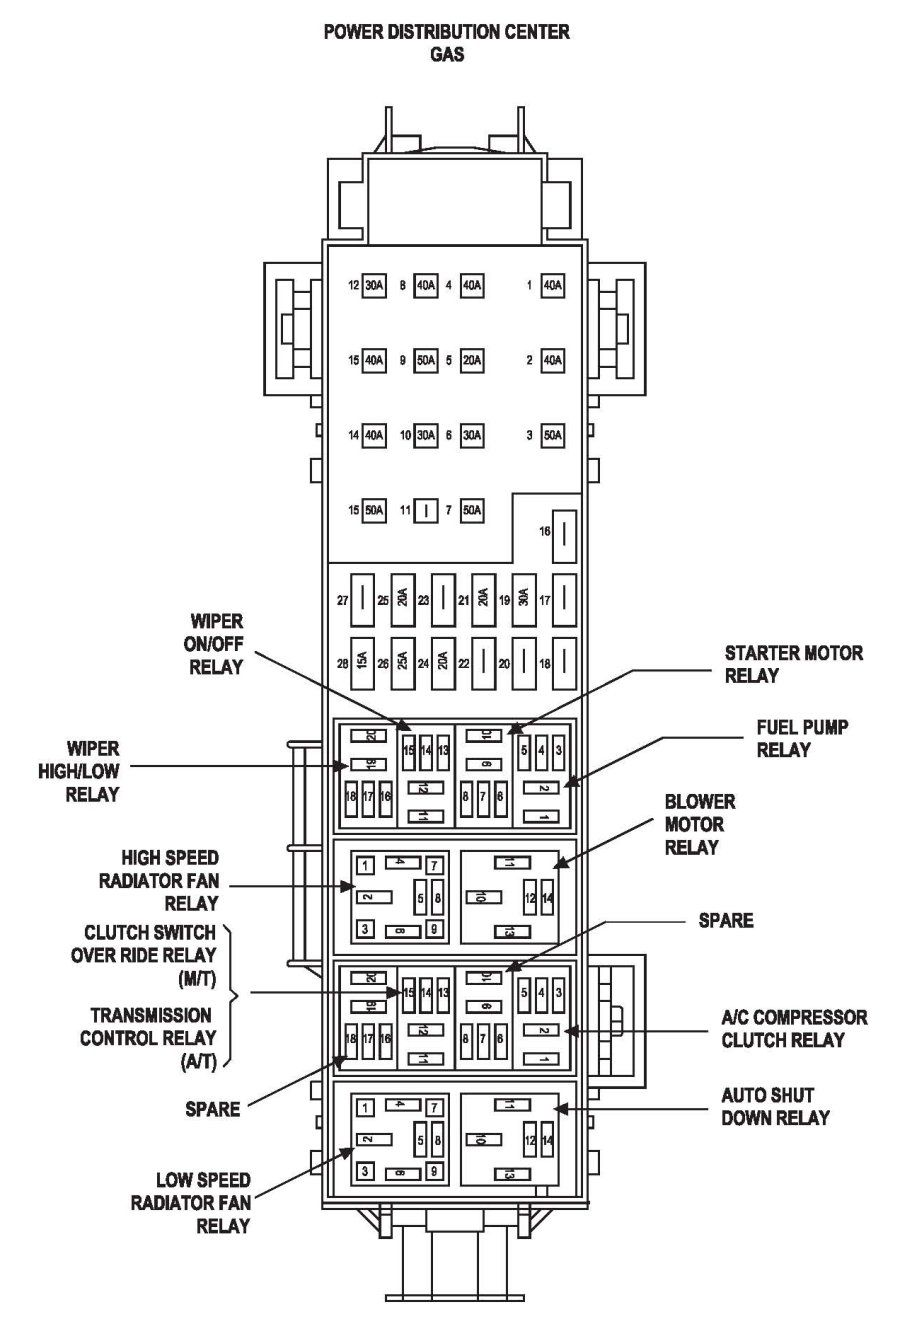 medium resolution of jeep liberty fuse box diagram image details jeep liberty rh pinterest com 1999 ford f150 fuse